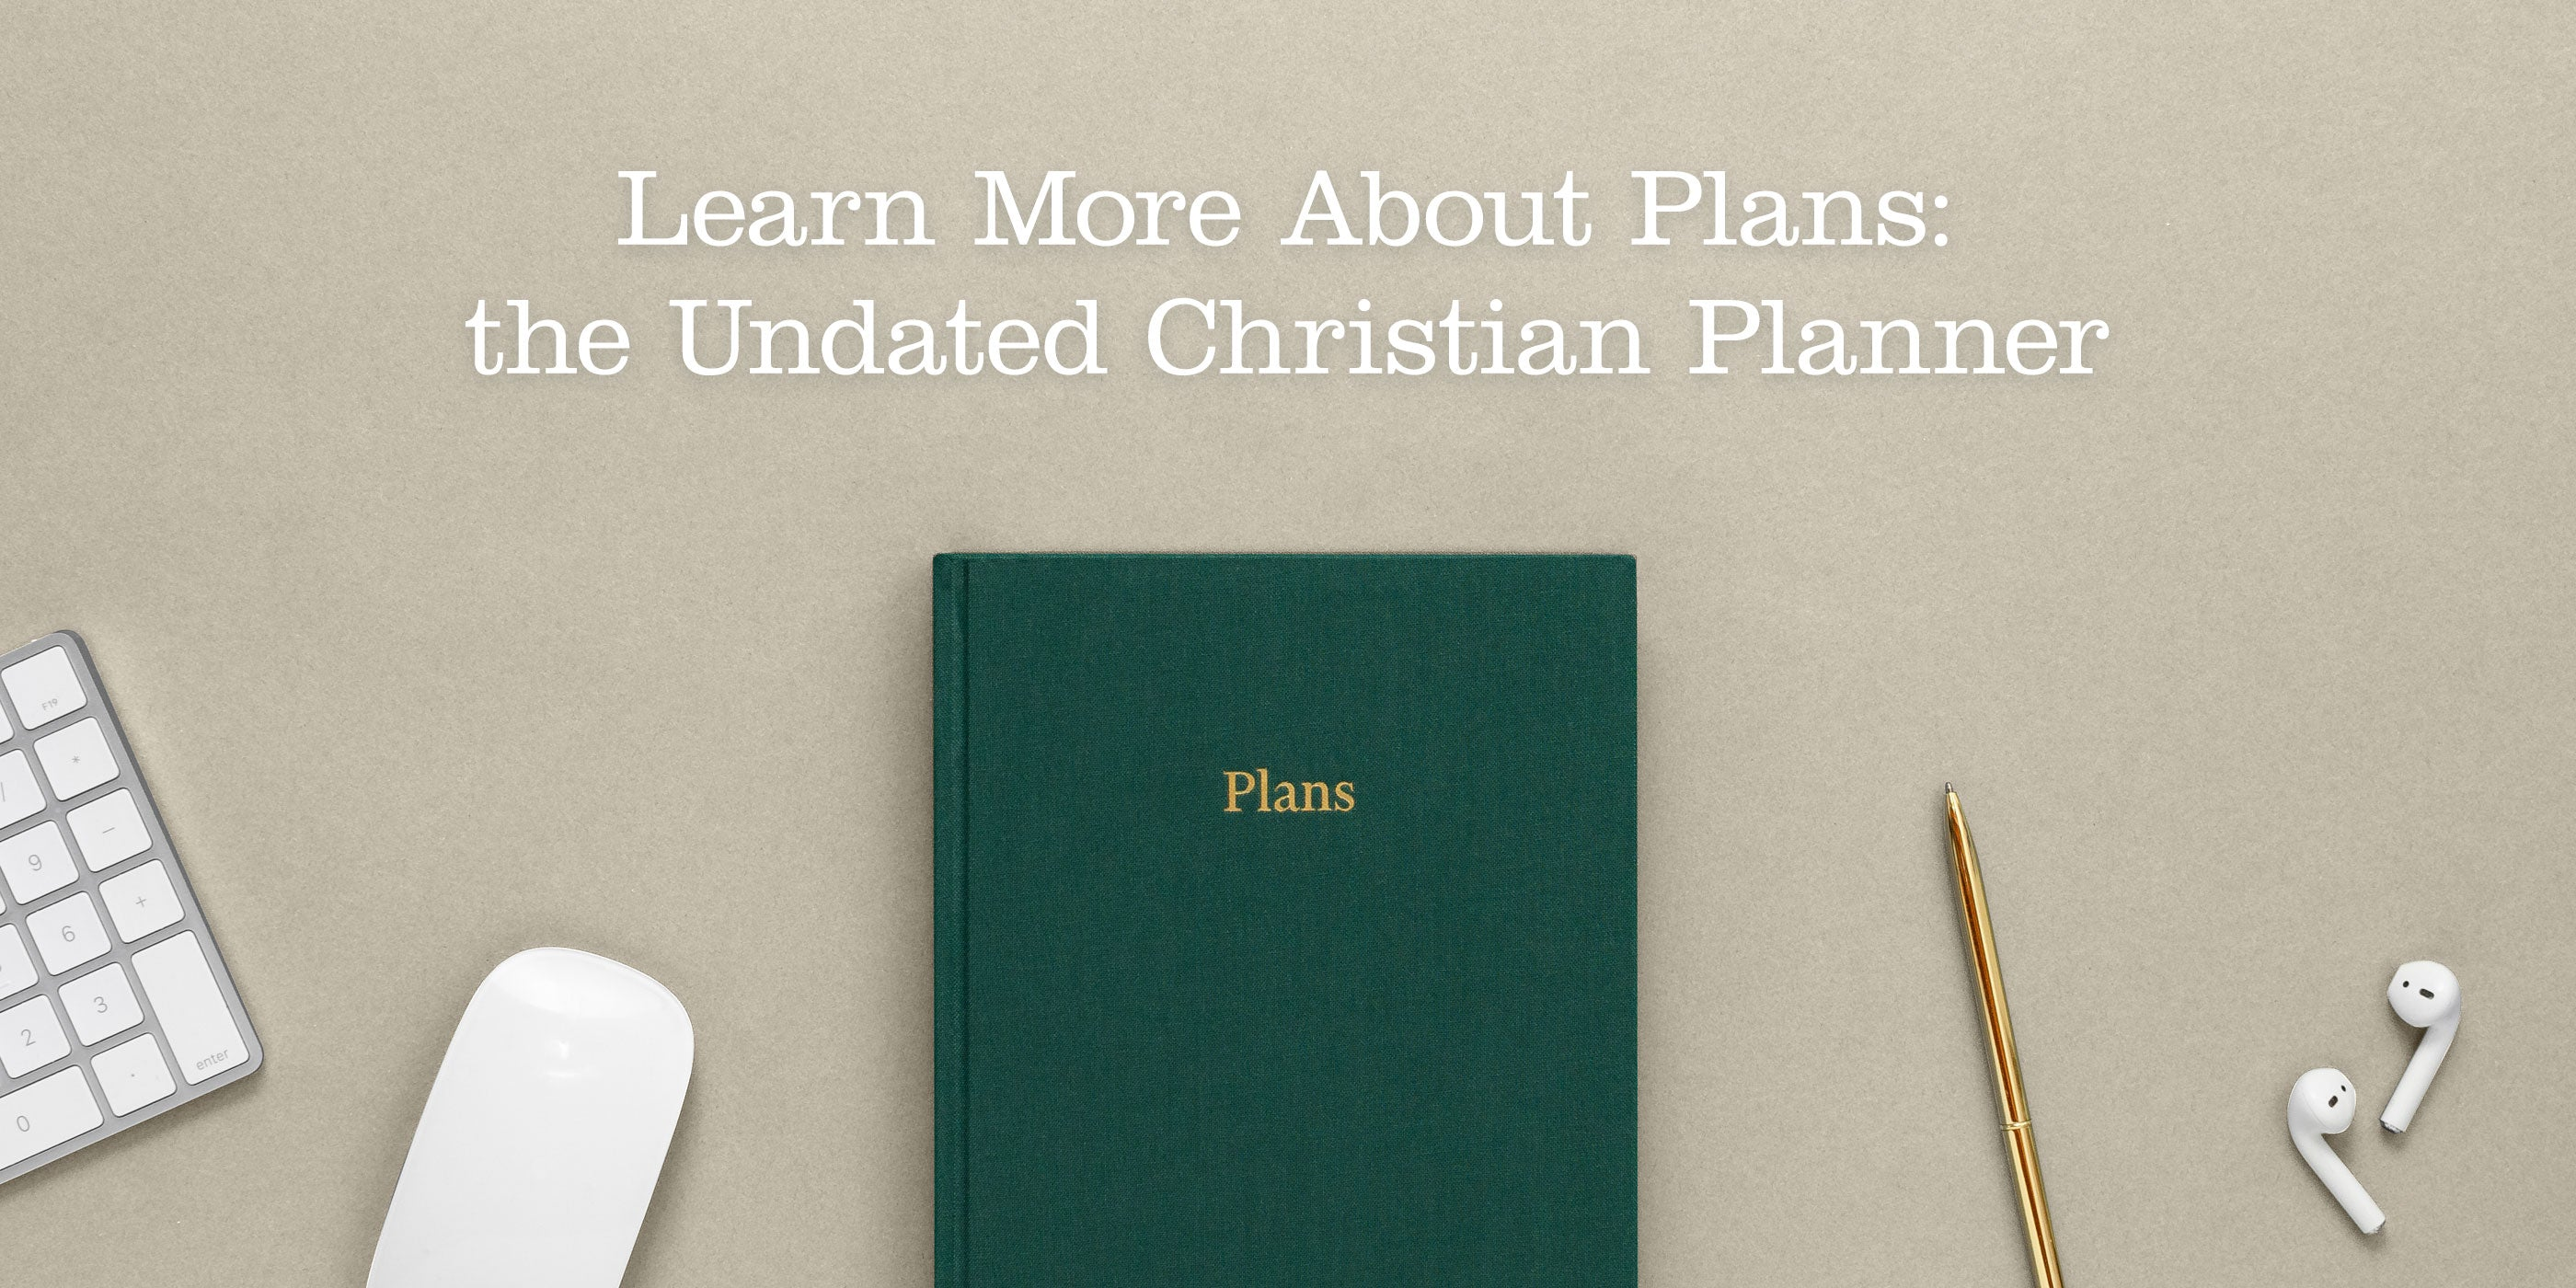 Learn more about Plans: the Undated Christian Planner. Desk scene with a keyboard, mouse, planner, brass pen, and wireless earbud headphones.